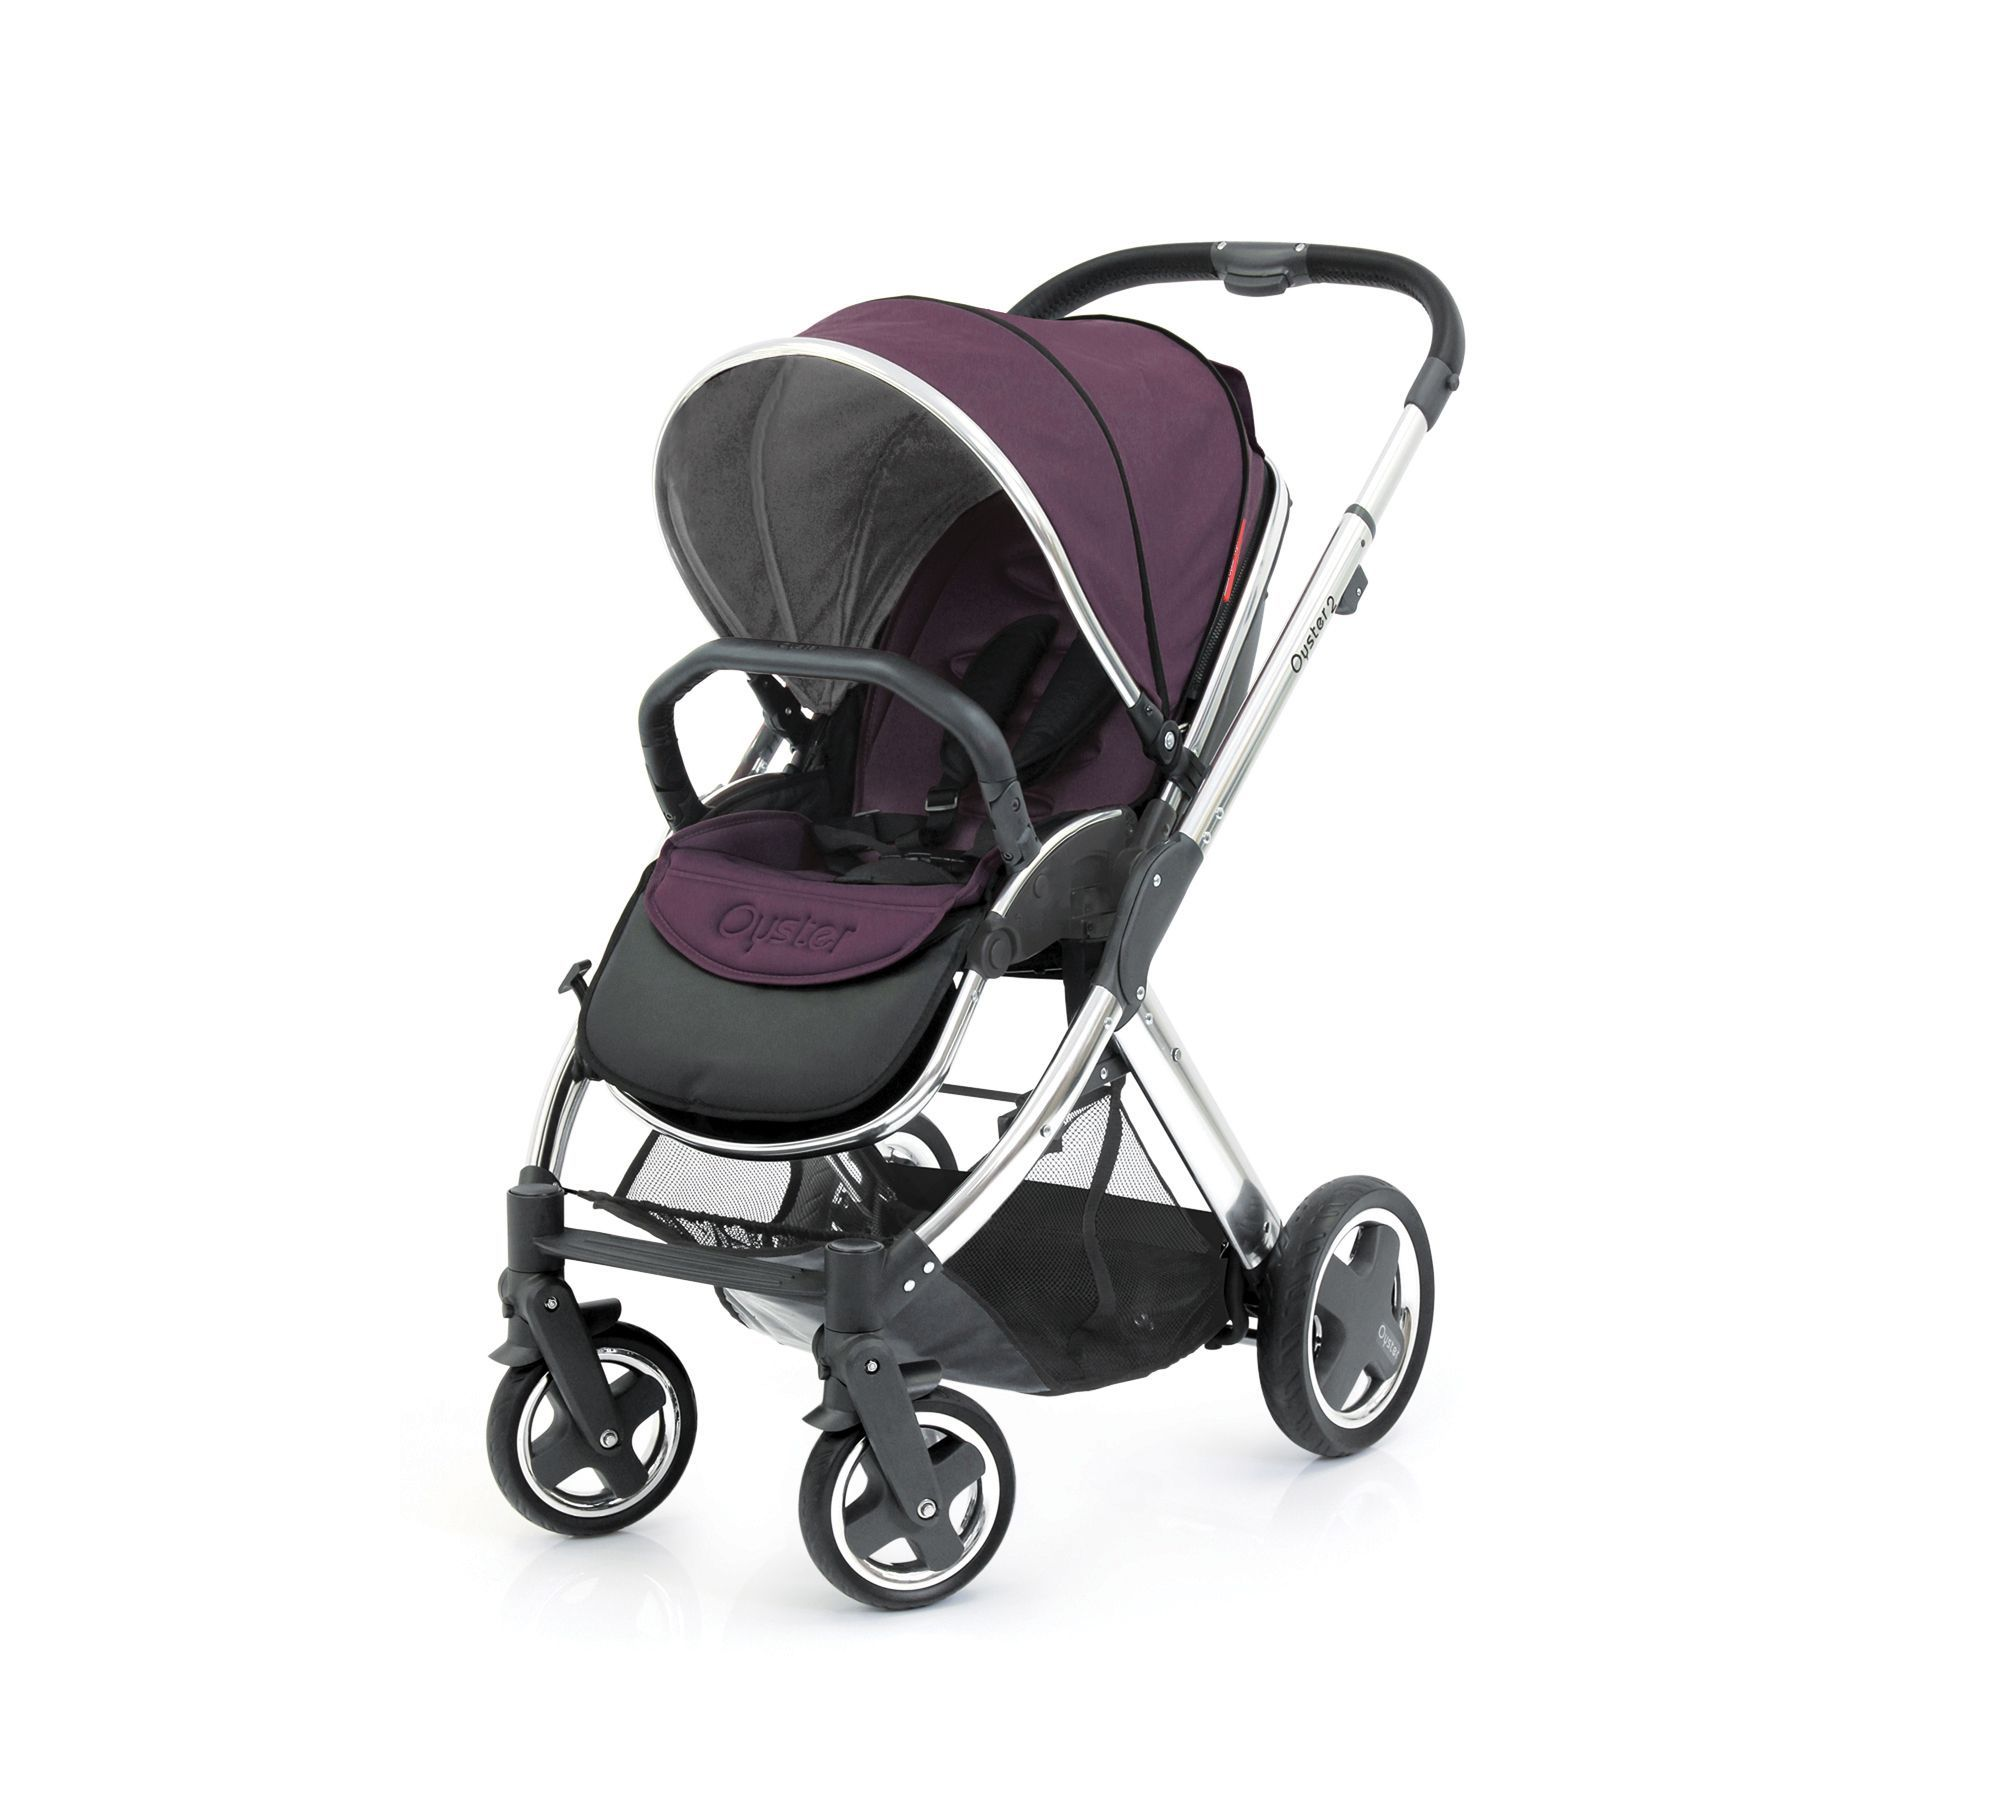 Oyster Pram Purple Oyster 2 Max Vogue Stroller Colour Pack Damson Babies